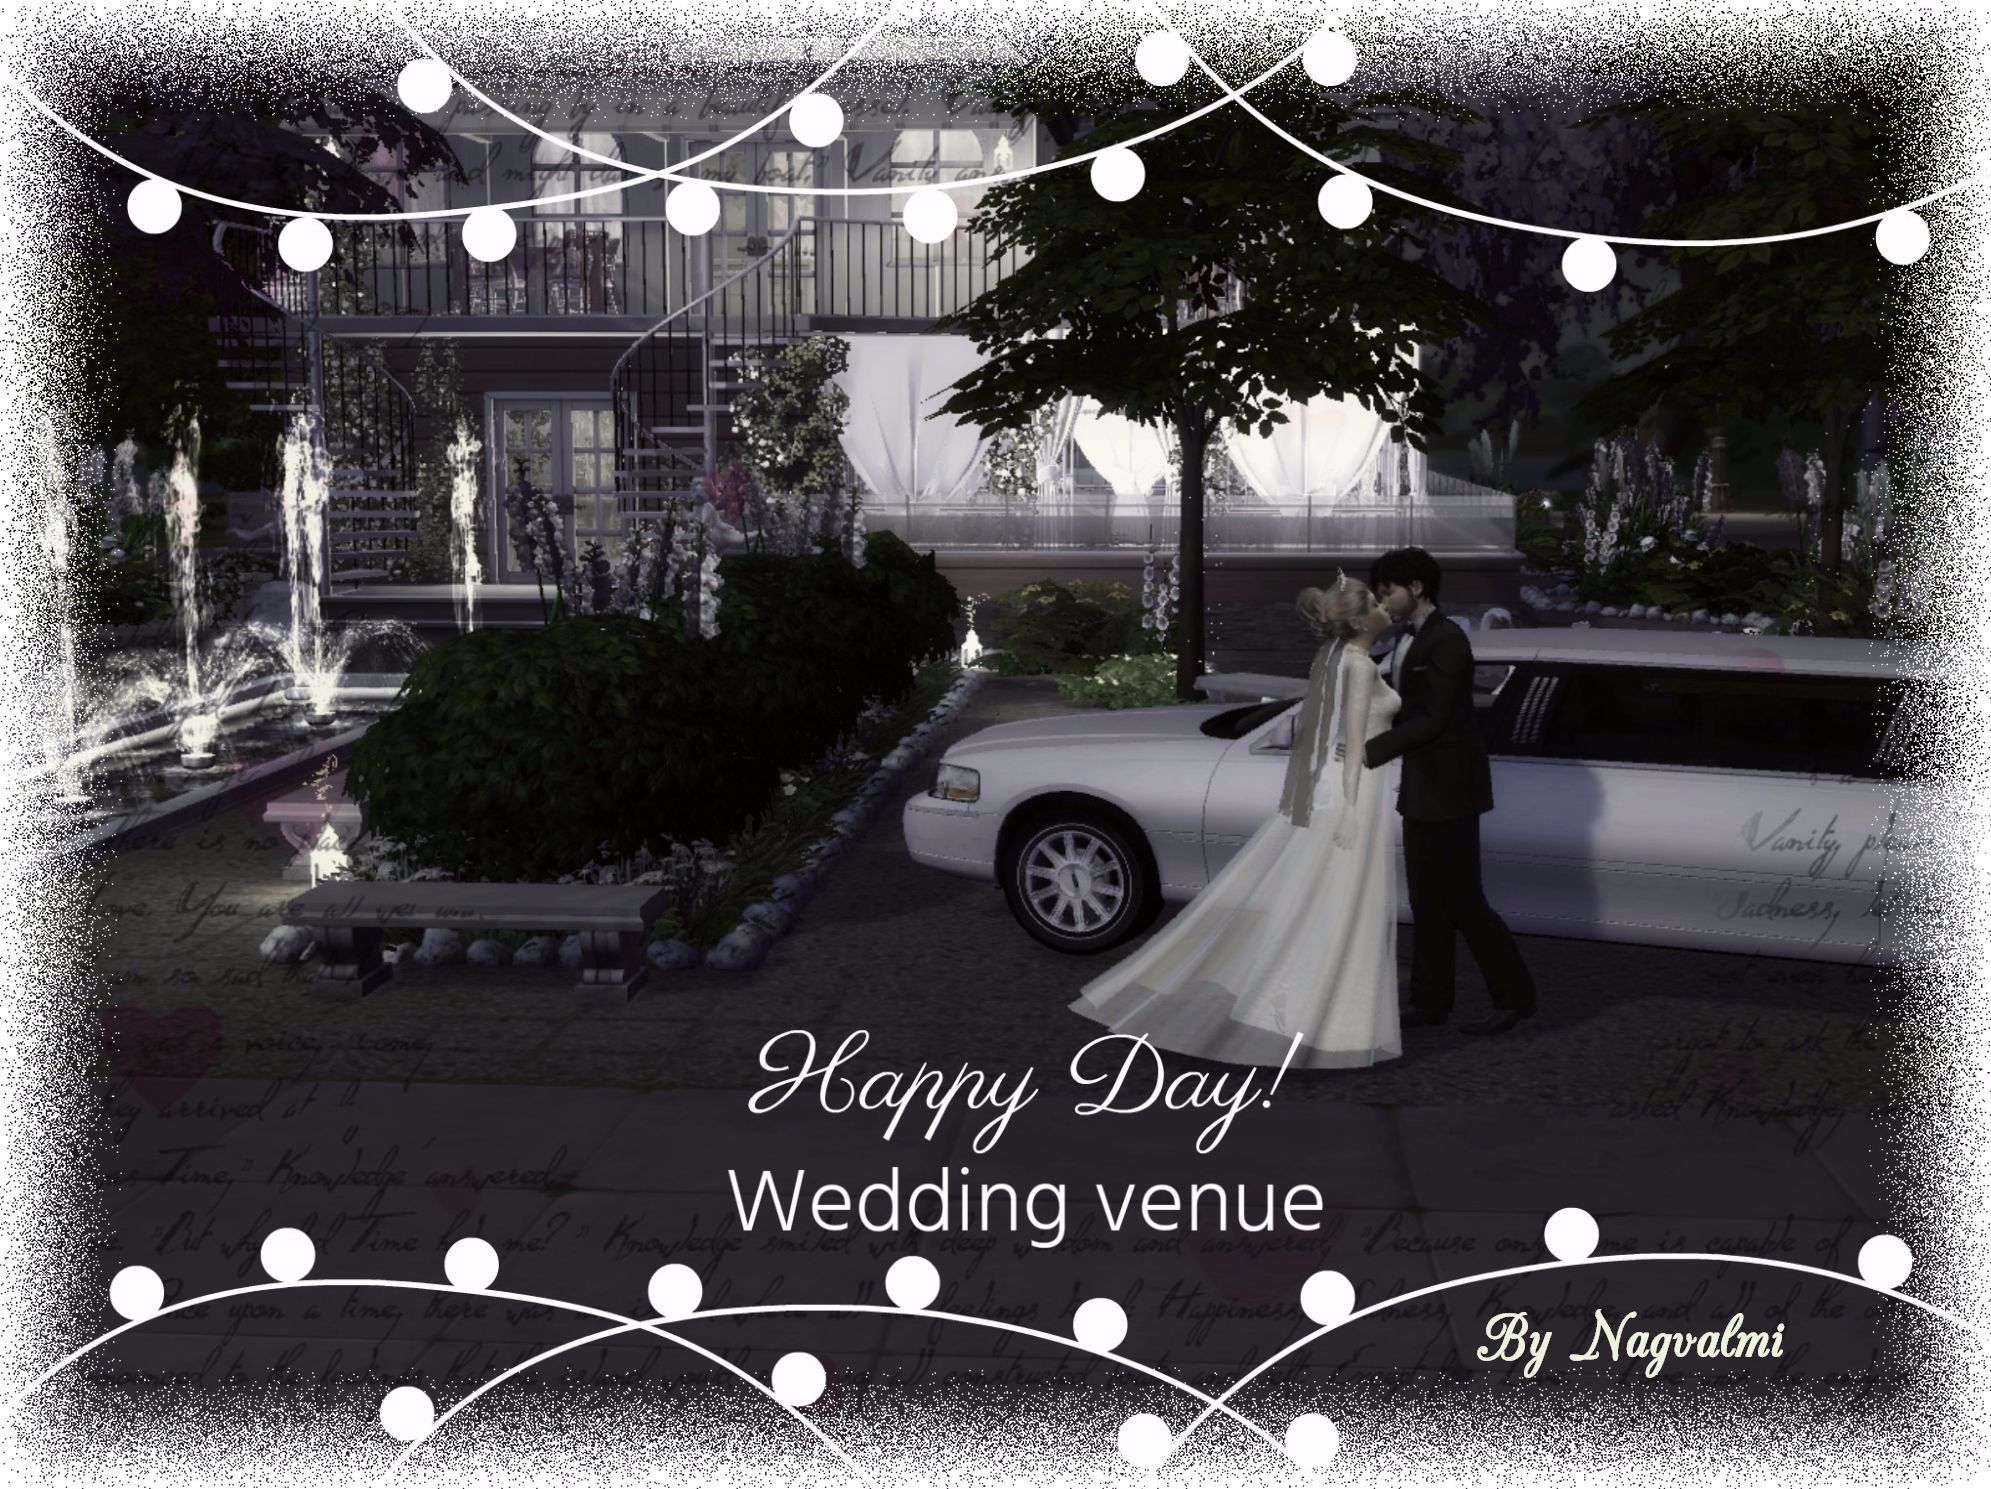 Wedding venue by Nagvalmi